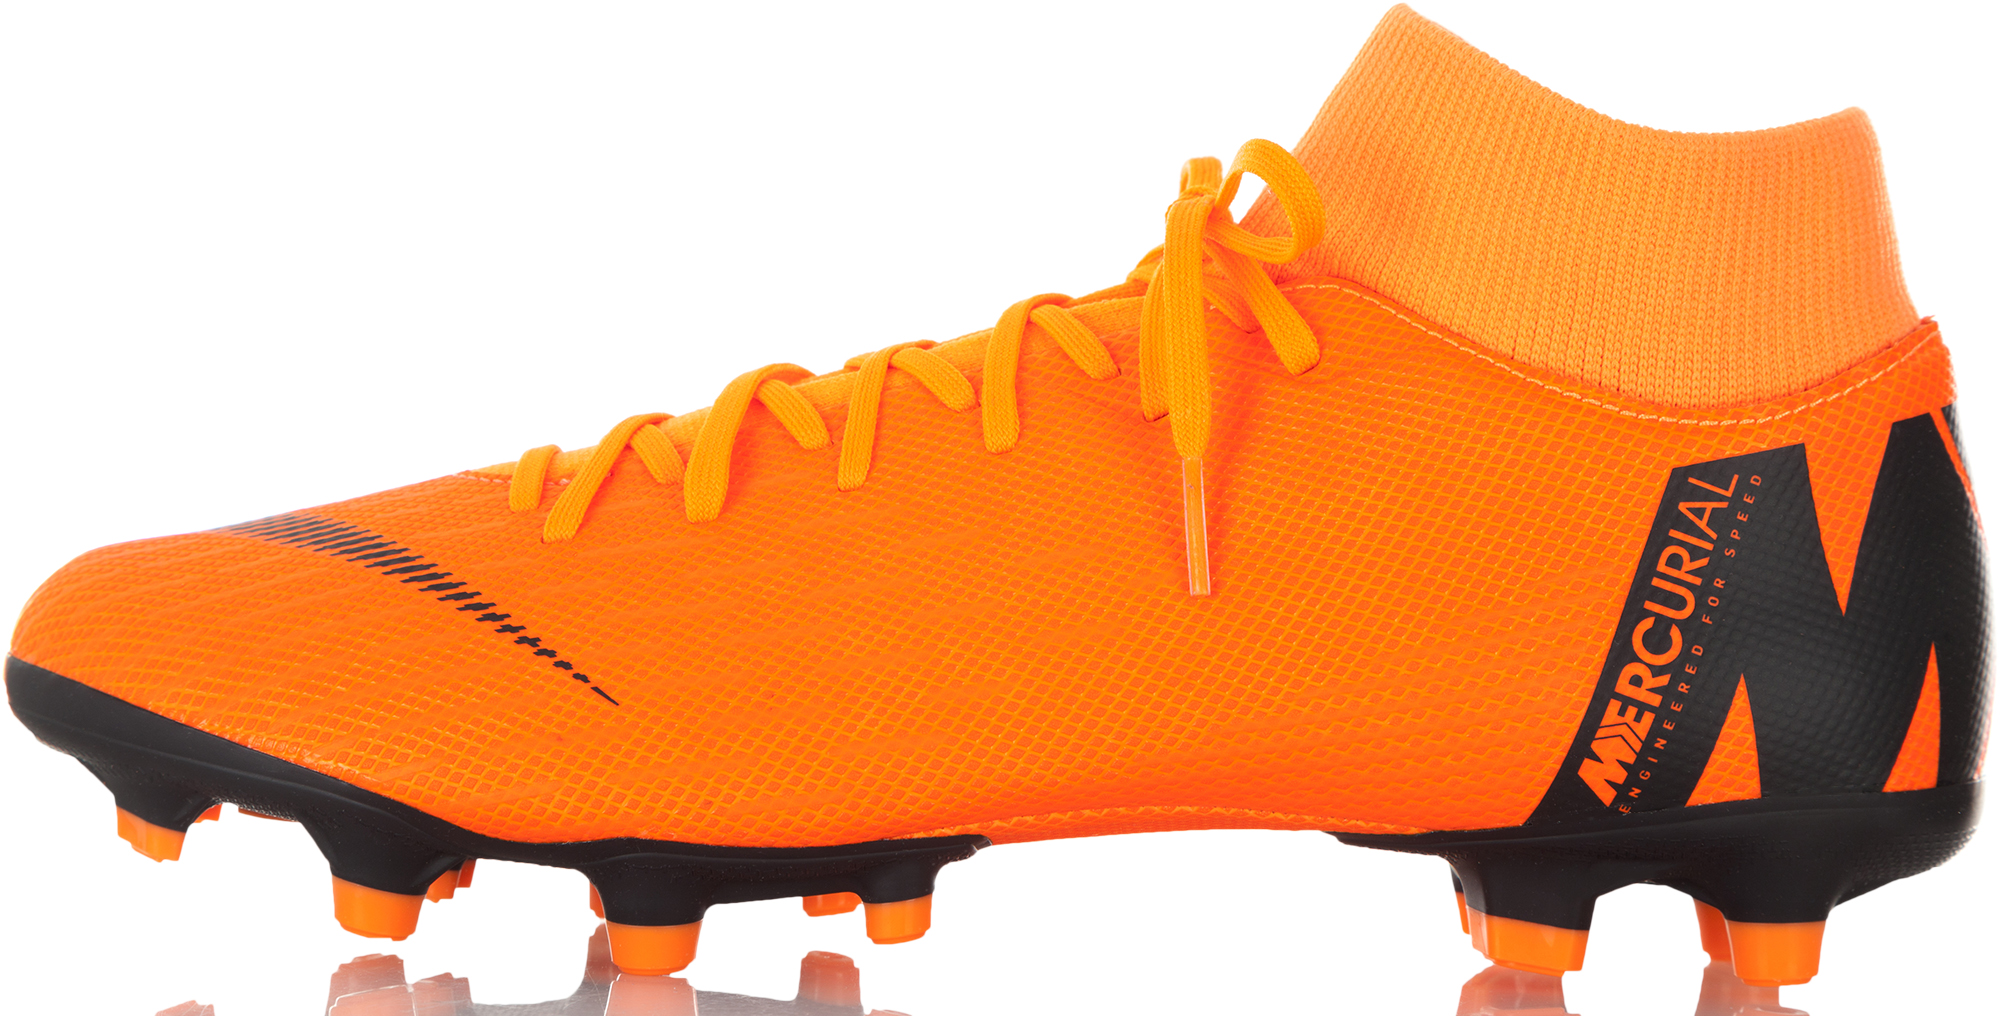 Nike Бутсы мужские Nike Superfly 6 Academy MG бутсы nike superfly academy gs cr7 jr fg mg aj3111 390